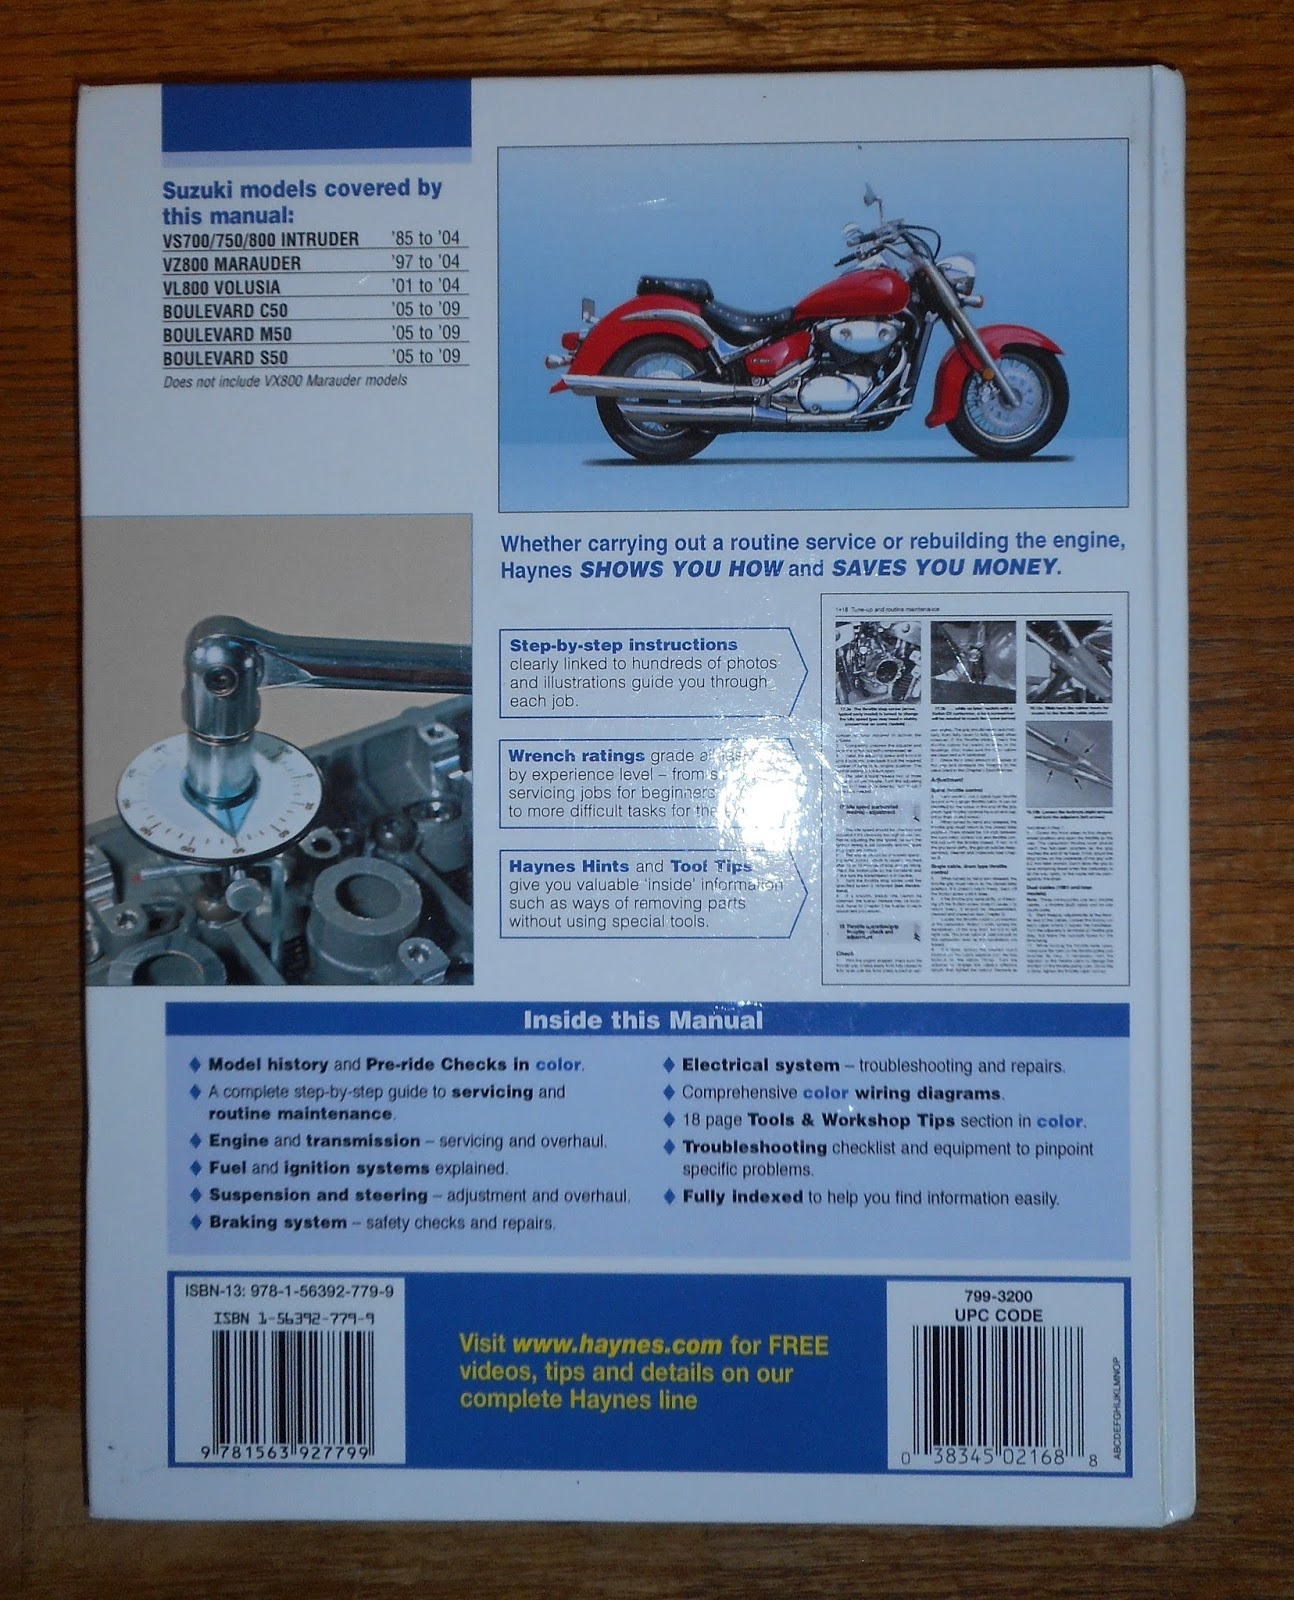 small resolution of 1996 suzuki intruder 1400 wiring diagram nemetas aufgegabelt infowiring diagram for 1996 suzuki intruder 1400